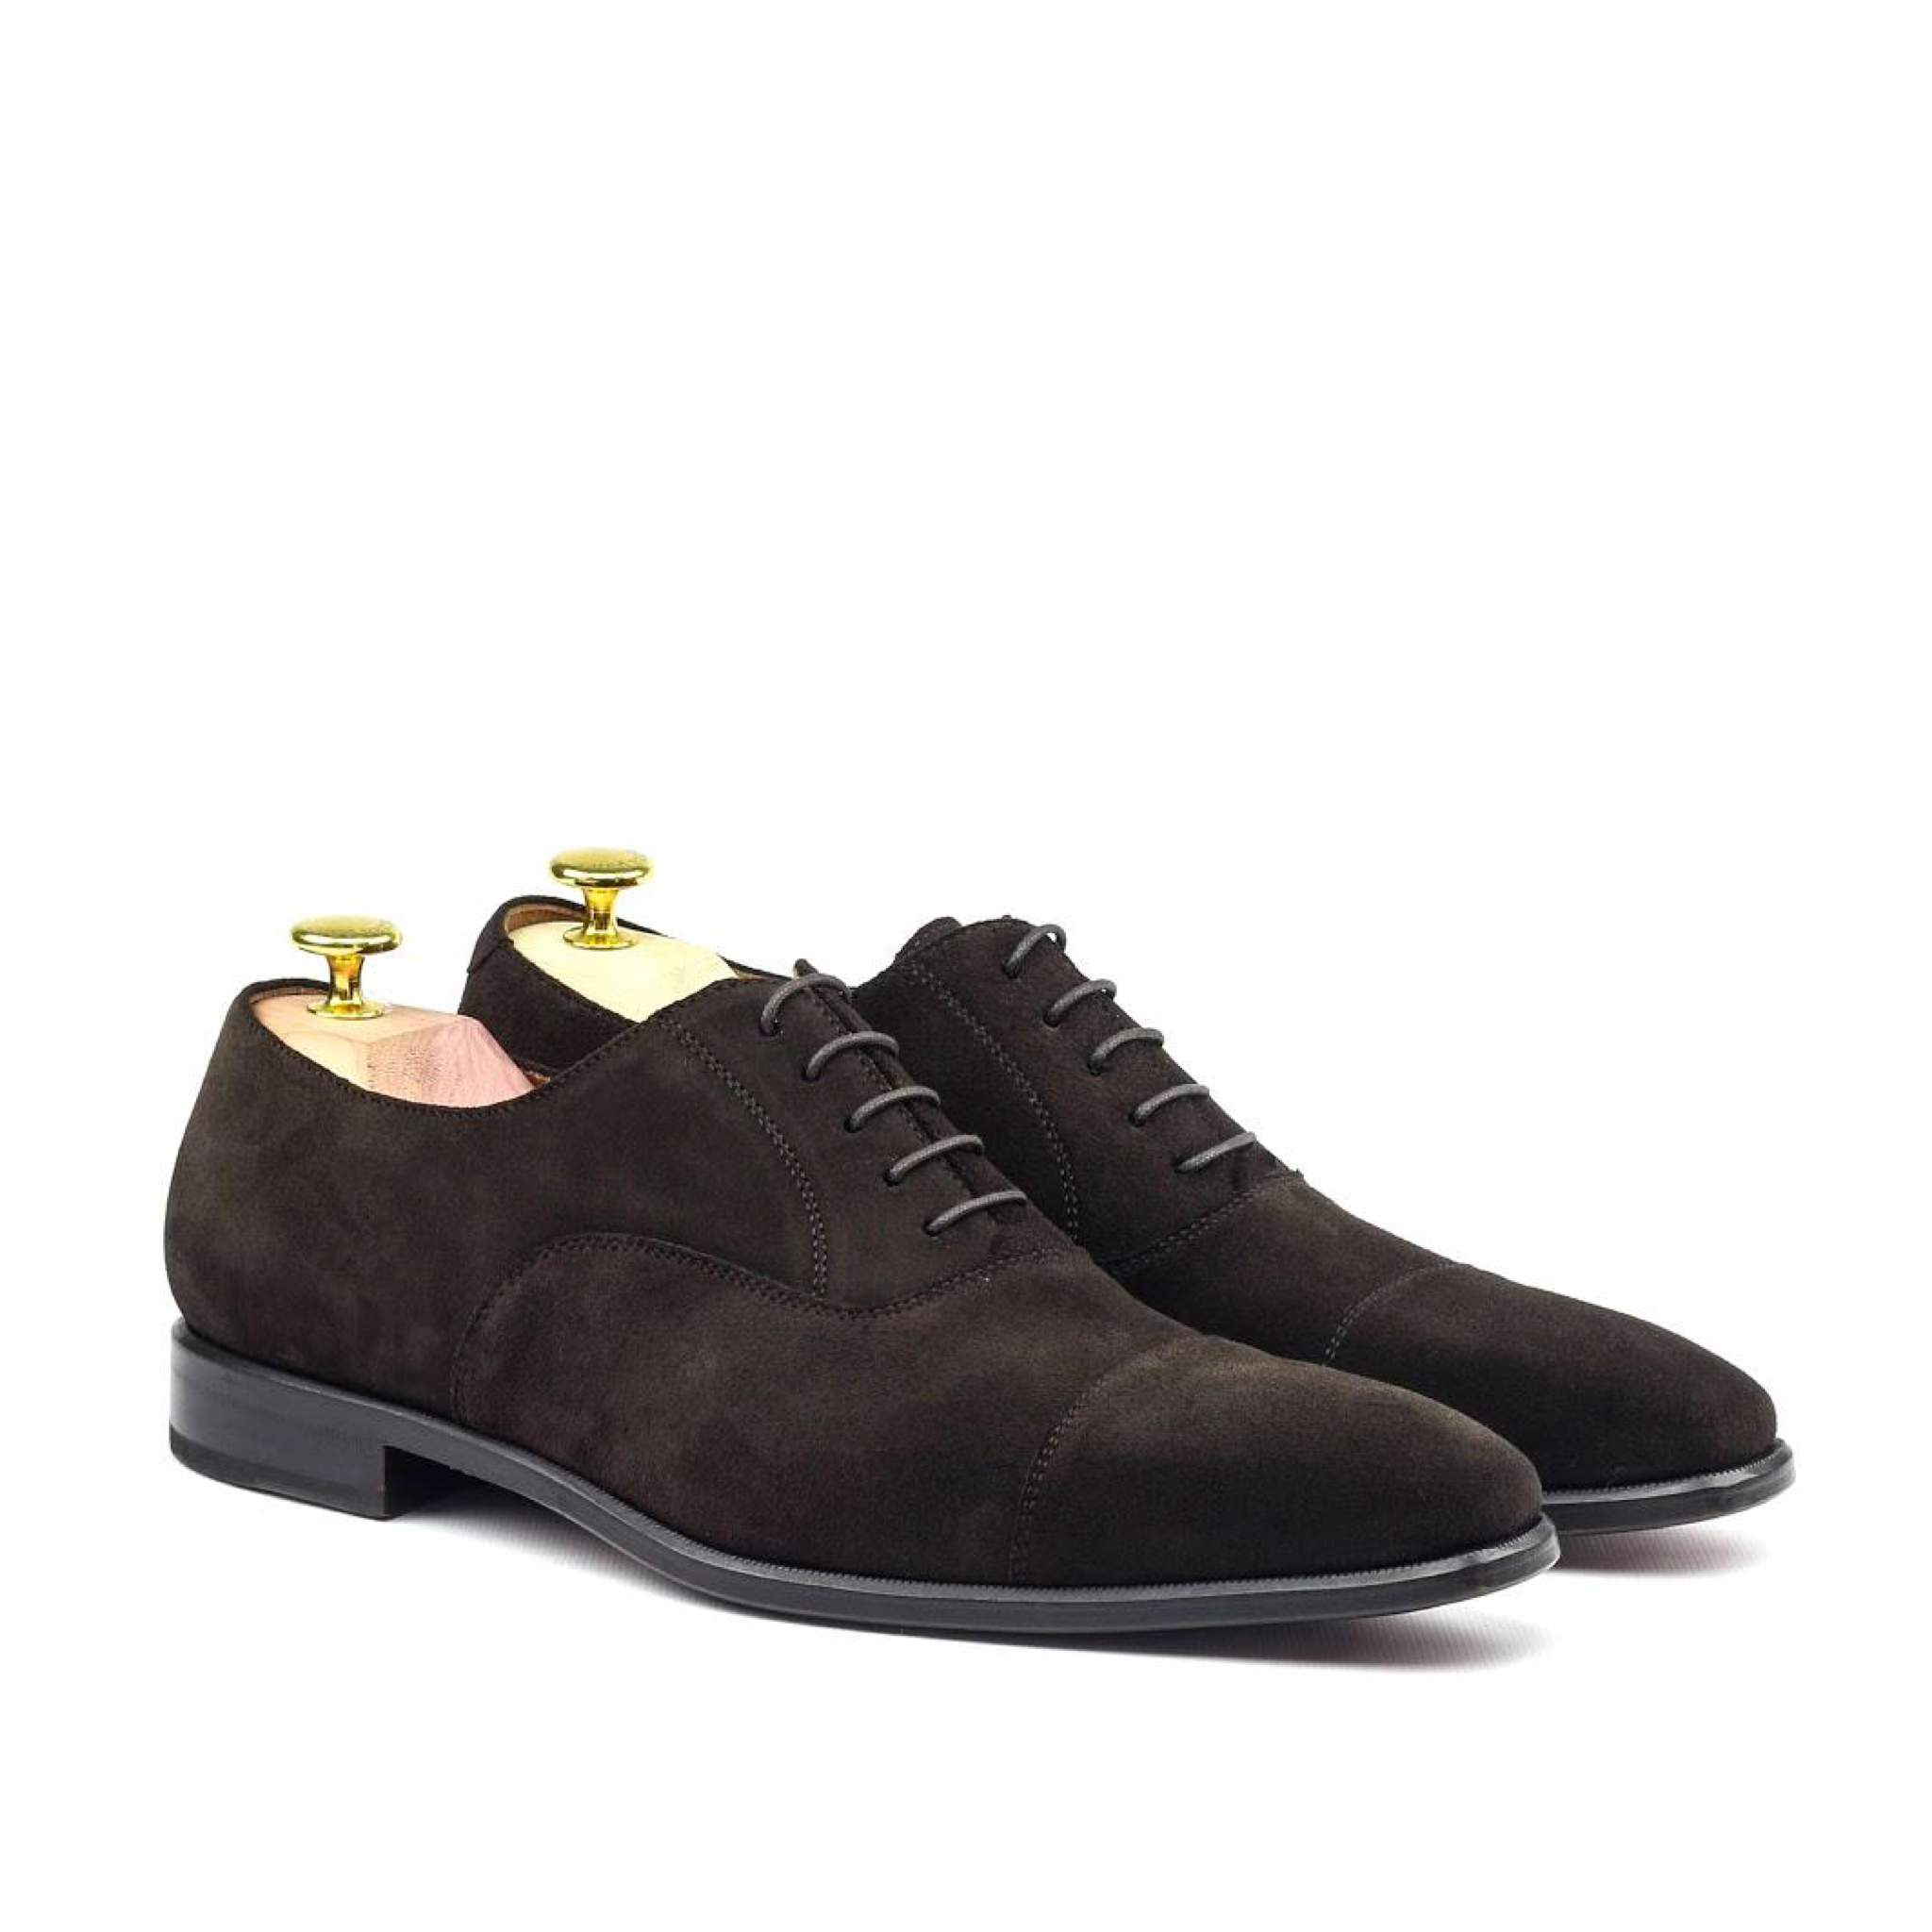 MANOR OF LONDON 'The Oxford' Brown Suede Shoe Luxury Custom Initials Monogrammed Front Side View